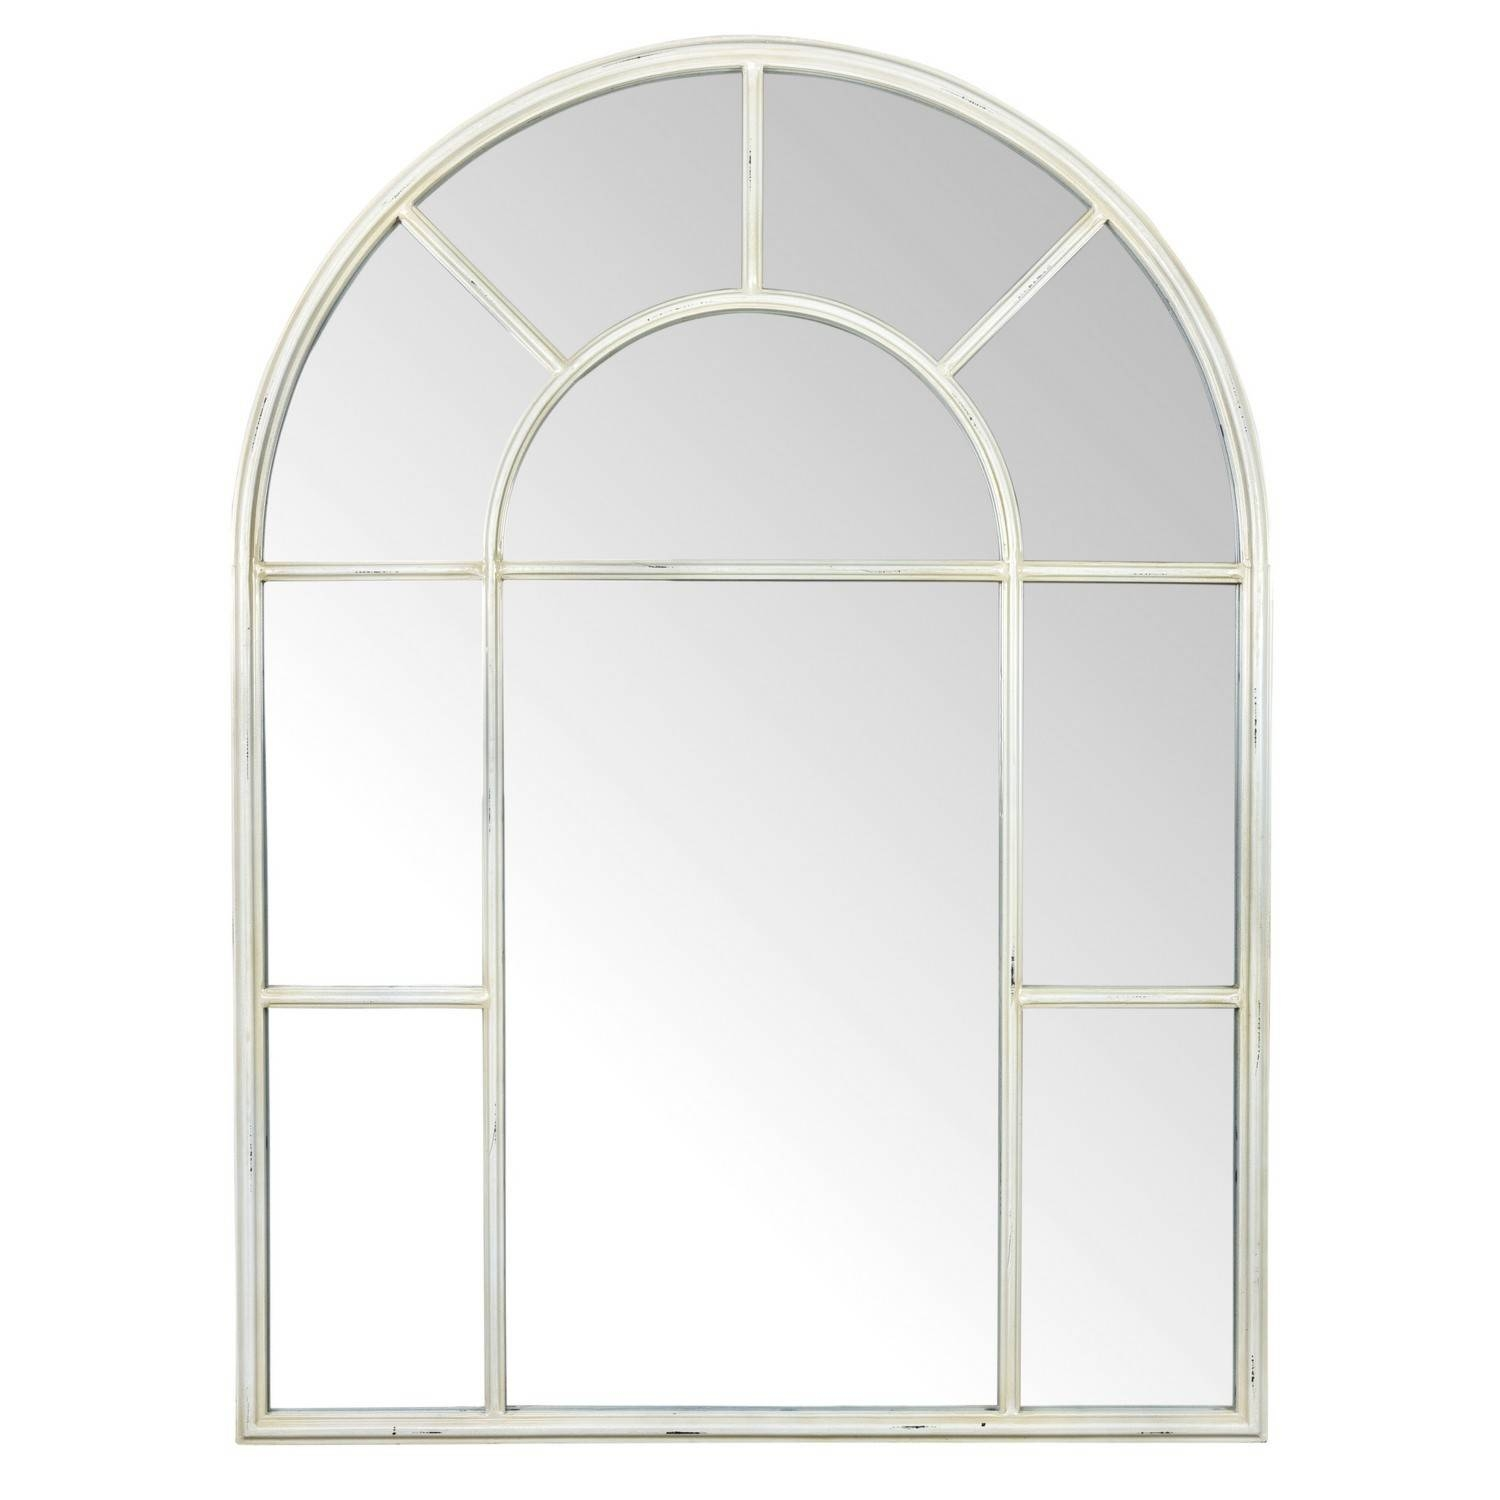 Ivory Arch Mirror intended for White Arched Window Mirrors (Image 18 of 25)